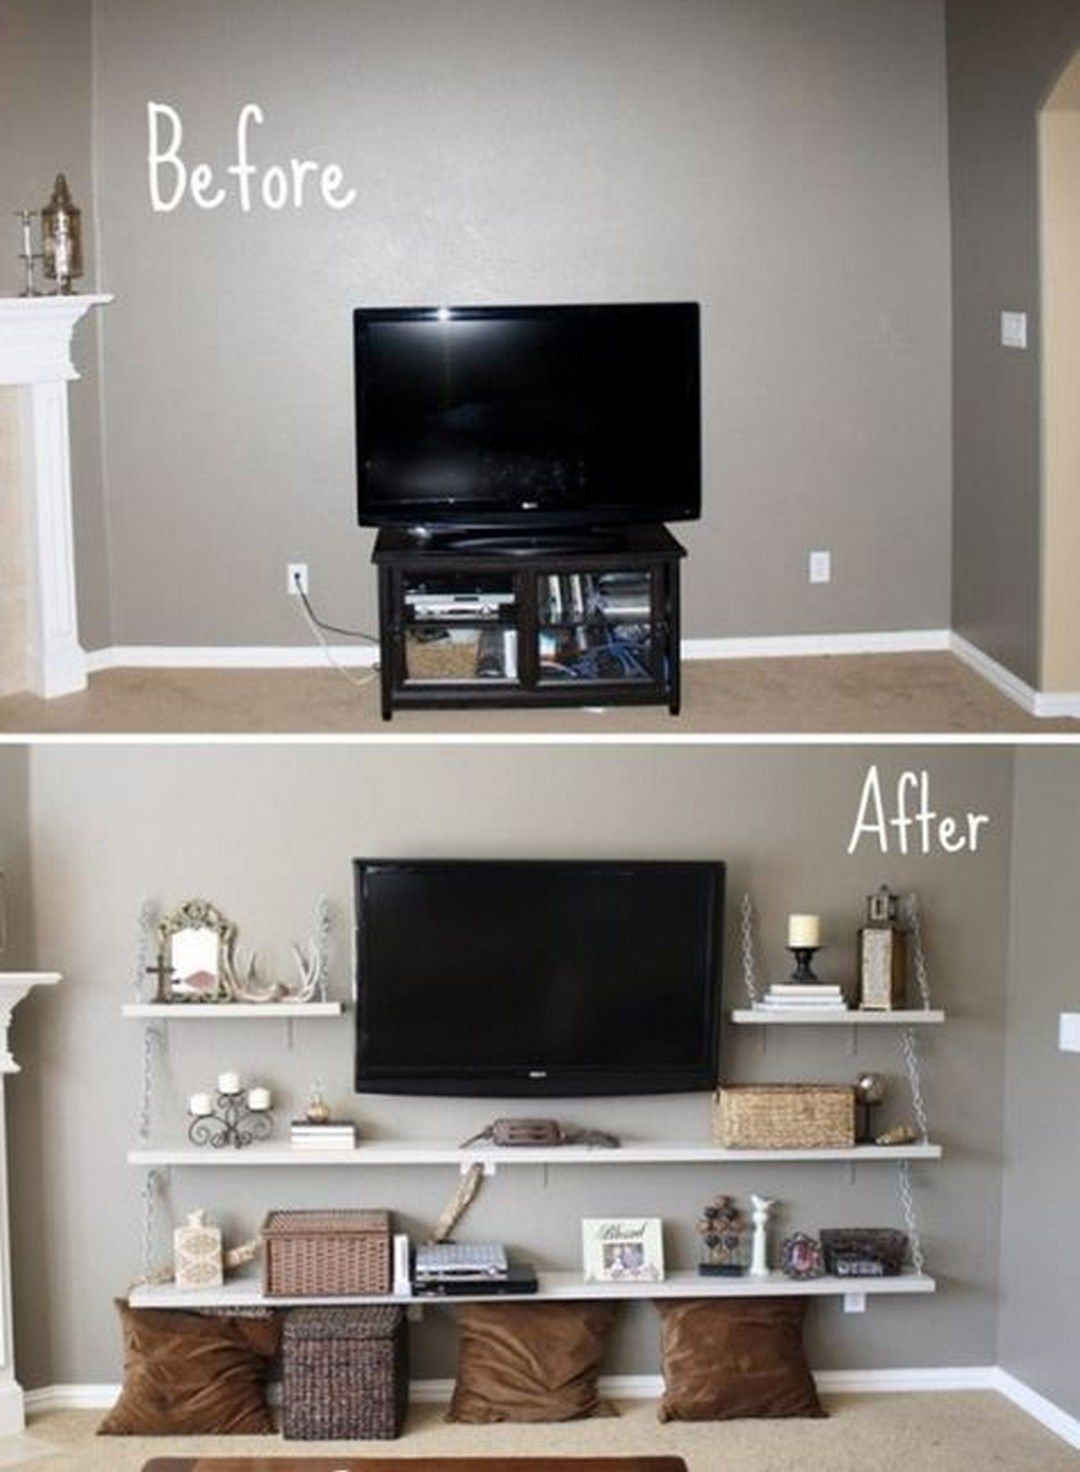 99 Diy Home Decor Ideas On A Budget You Must Try 48 Life